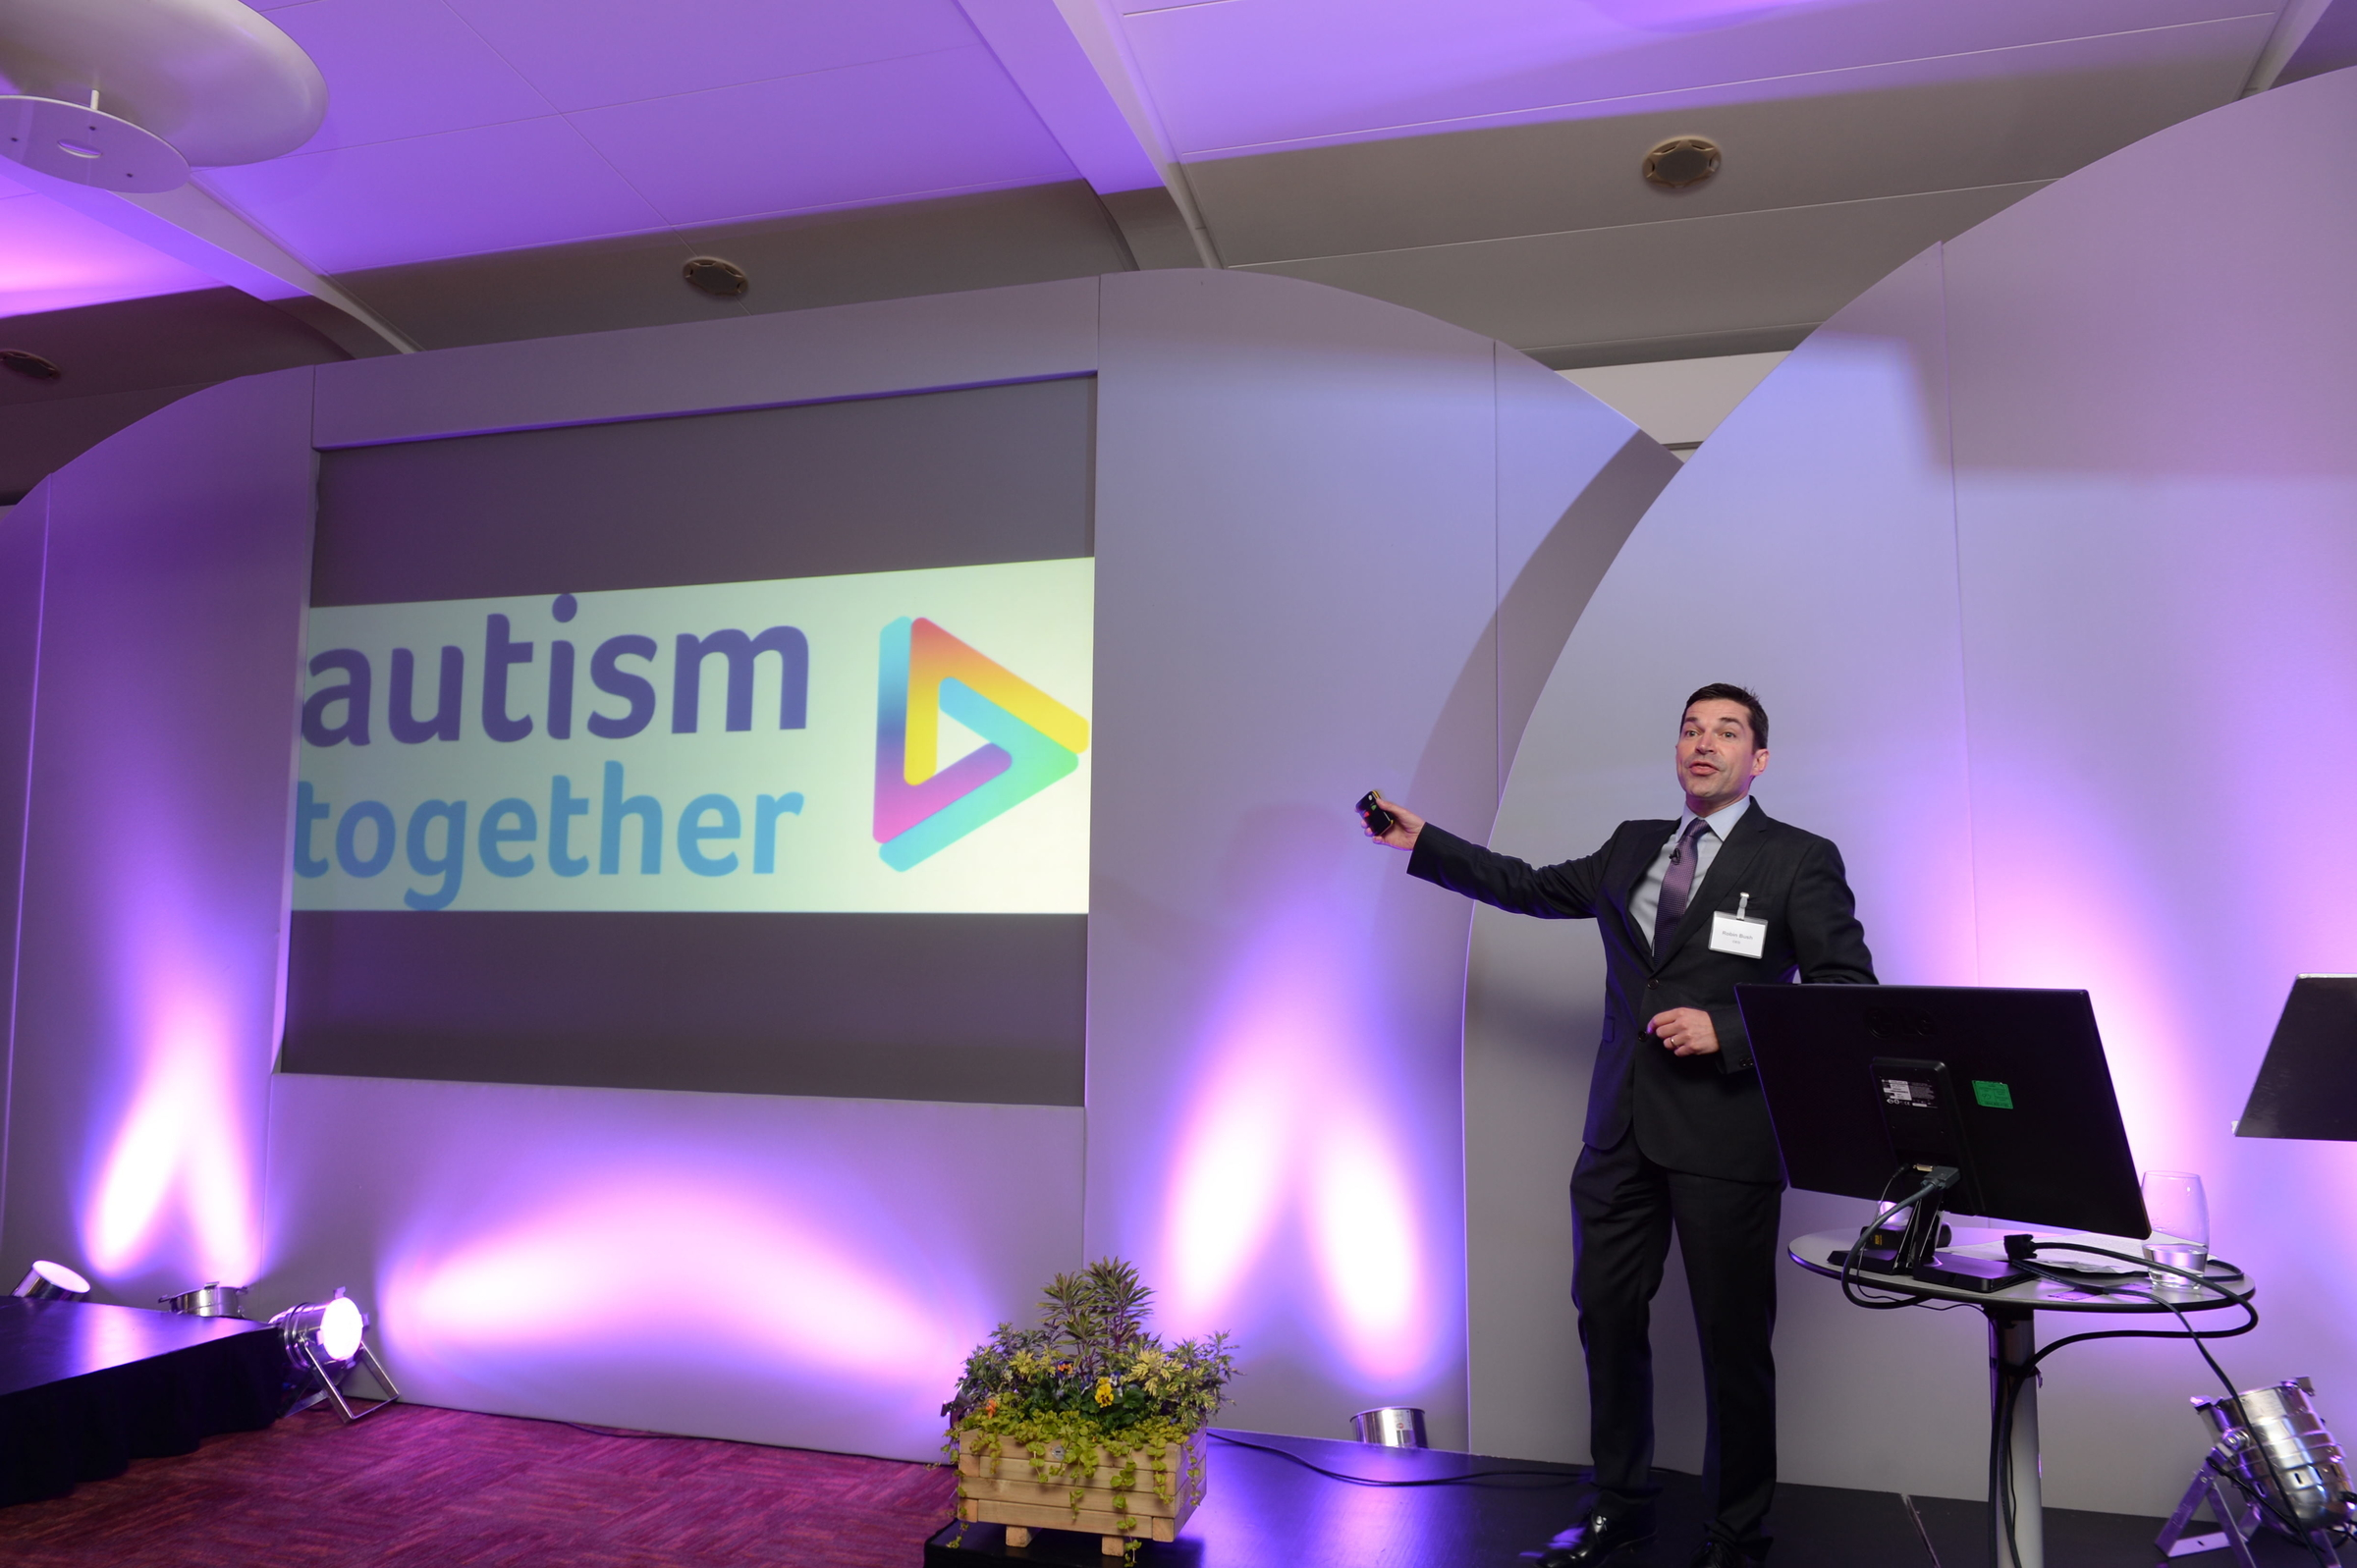 Press Release – Merseyside Autism Charity Re-Launches With A New Name And National Ambitions